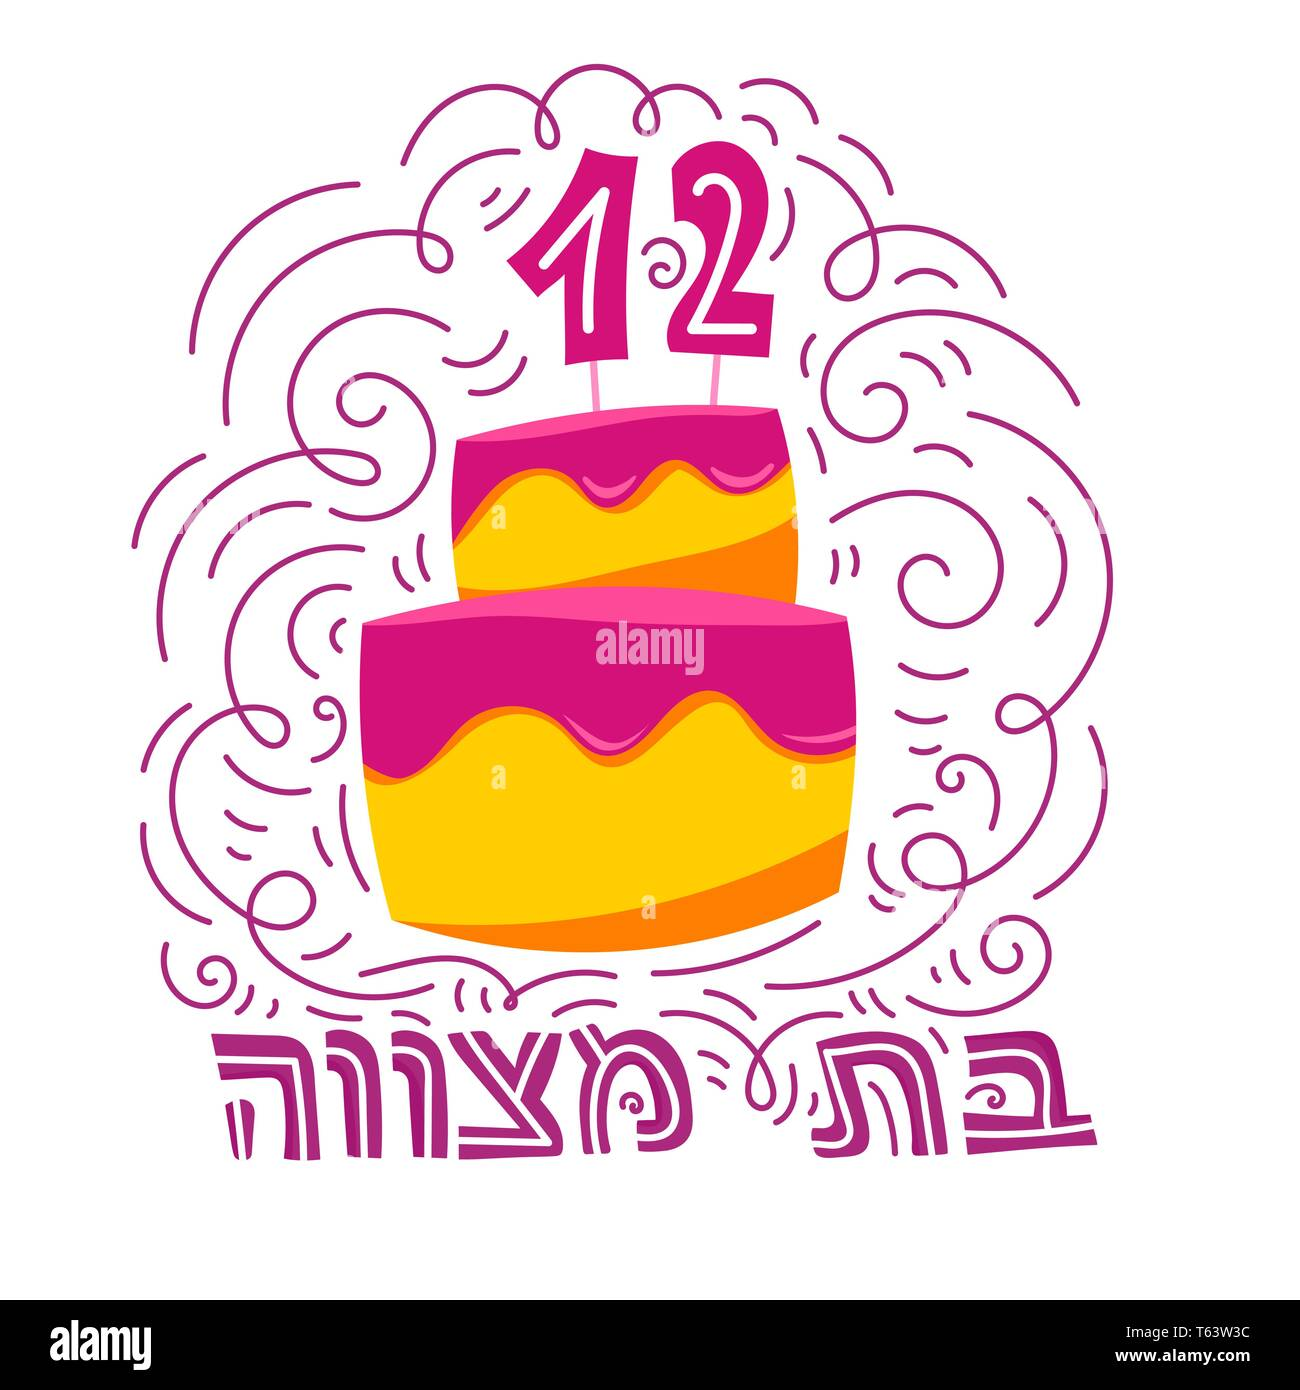 Bat Mitzvah greeting card. Hand drawn vector illustration. Cake with the number 12 on top. Doodle style. Hebrew text: Bat Mitzhvah - Stock Image